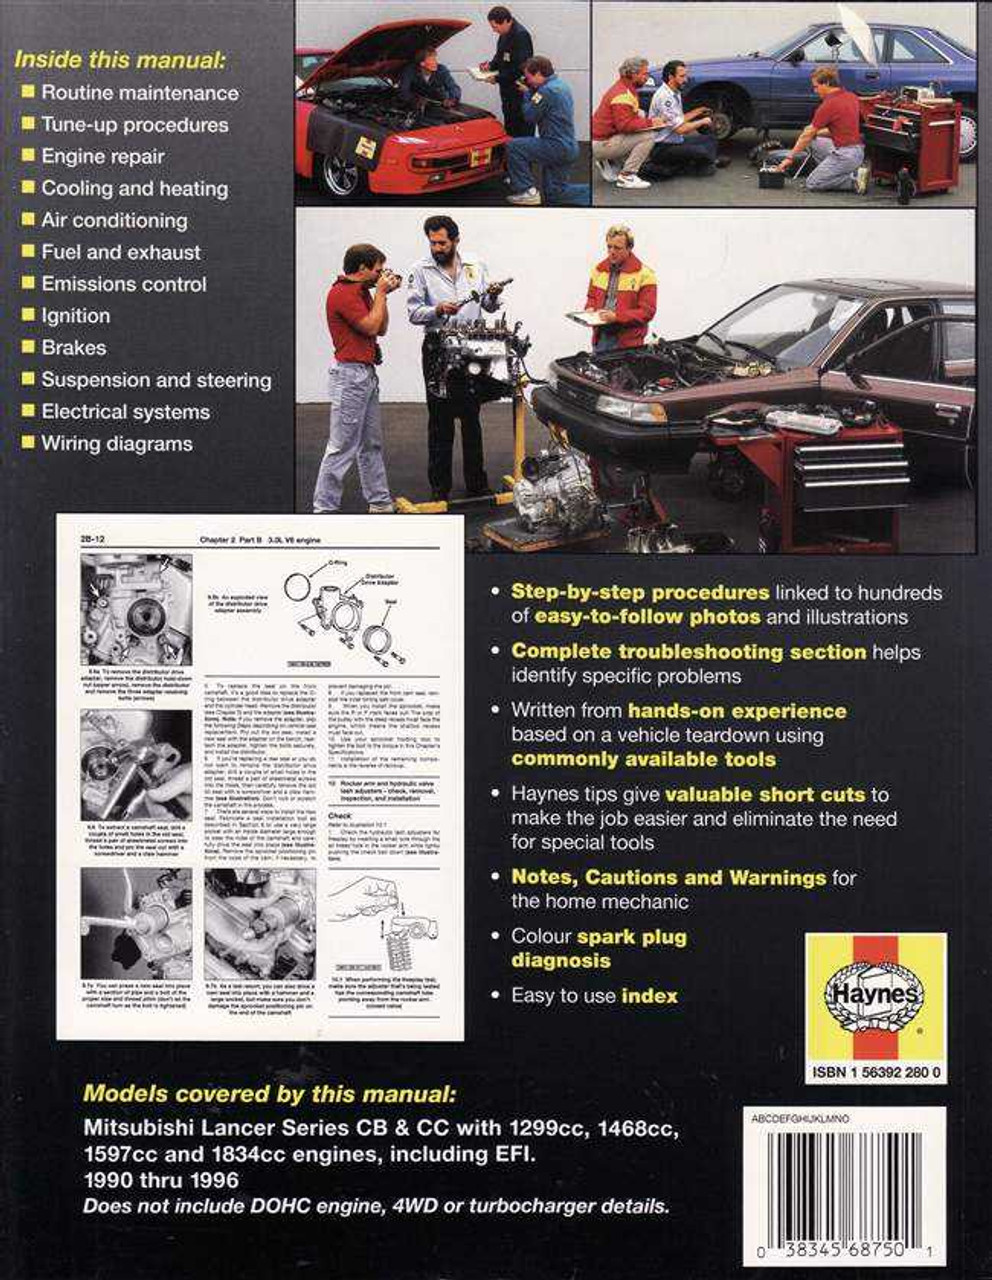 Mitsubishi Lancer CB and CC 1990 - 1996 Workshop Manual on